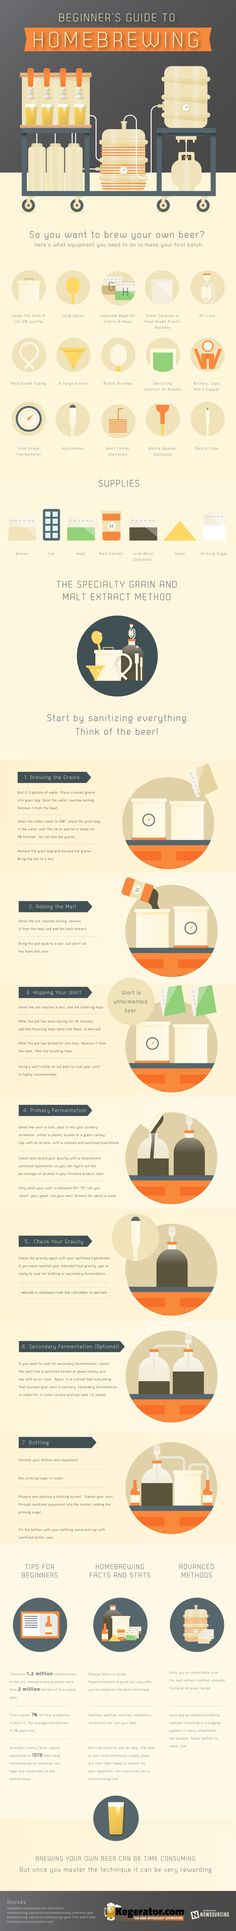 Beginner's Guide to Homebrewing #infographic #Beer #Wine #Food #Homebrewing